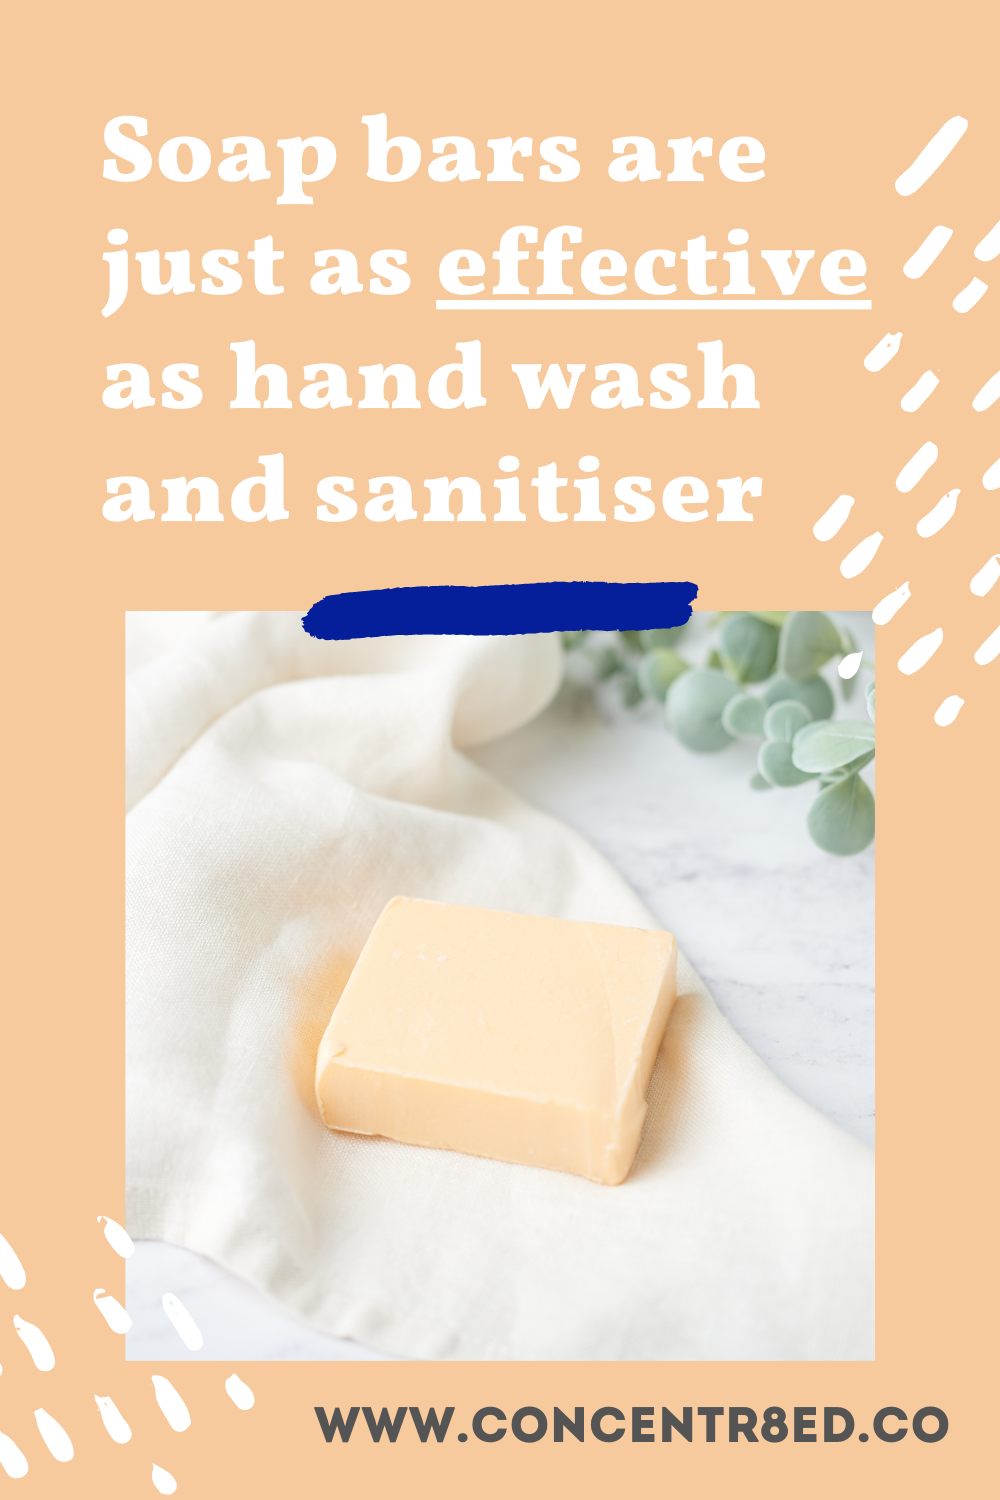 Soap bars are just as effective as hand wash and sanitiser